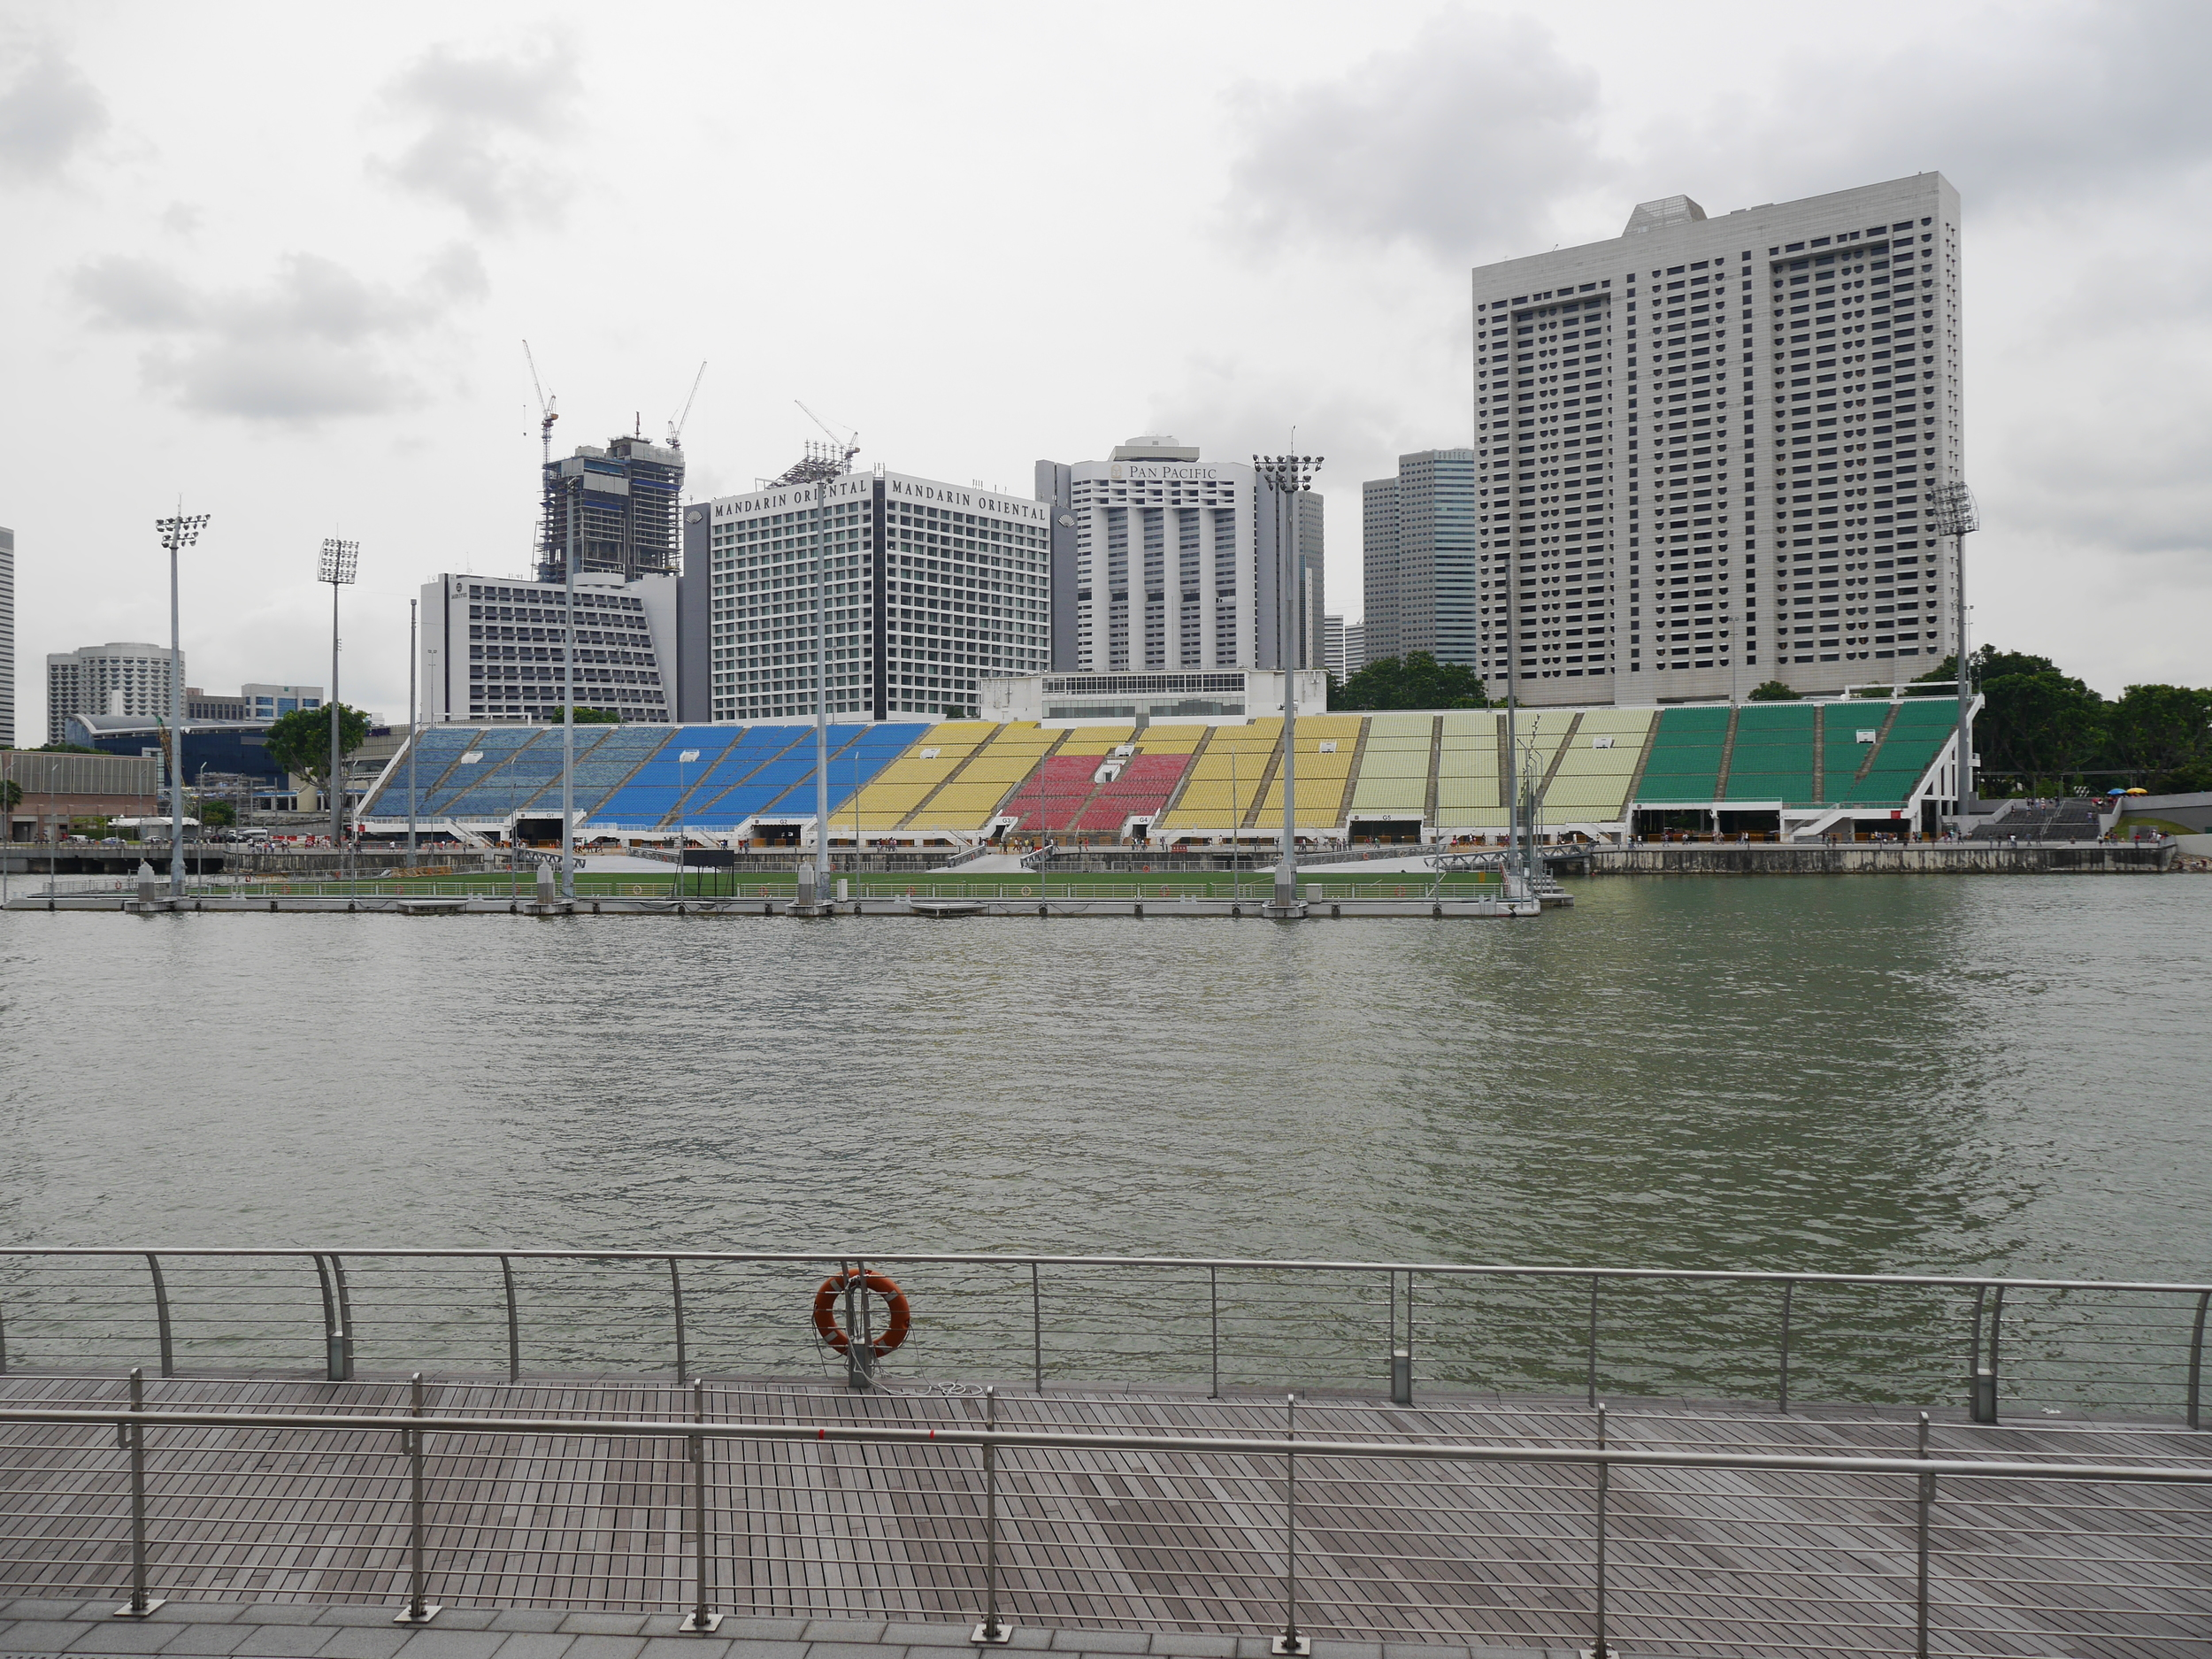 The (maybe just a) Singapore Junior Olympics field. More or less floating on the bay. Really neat.